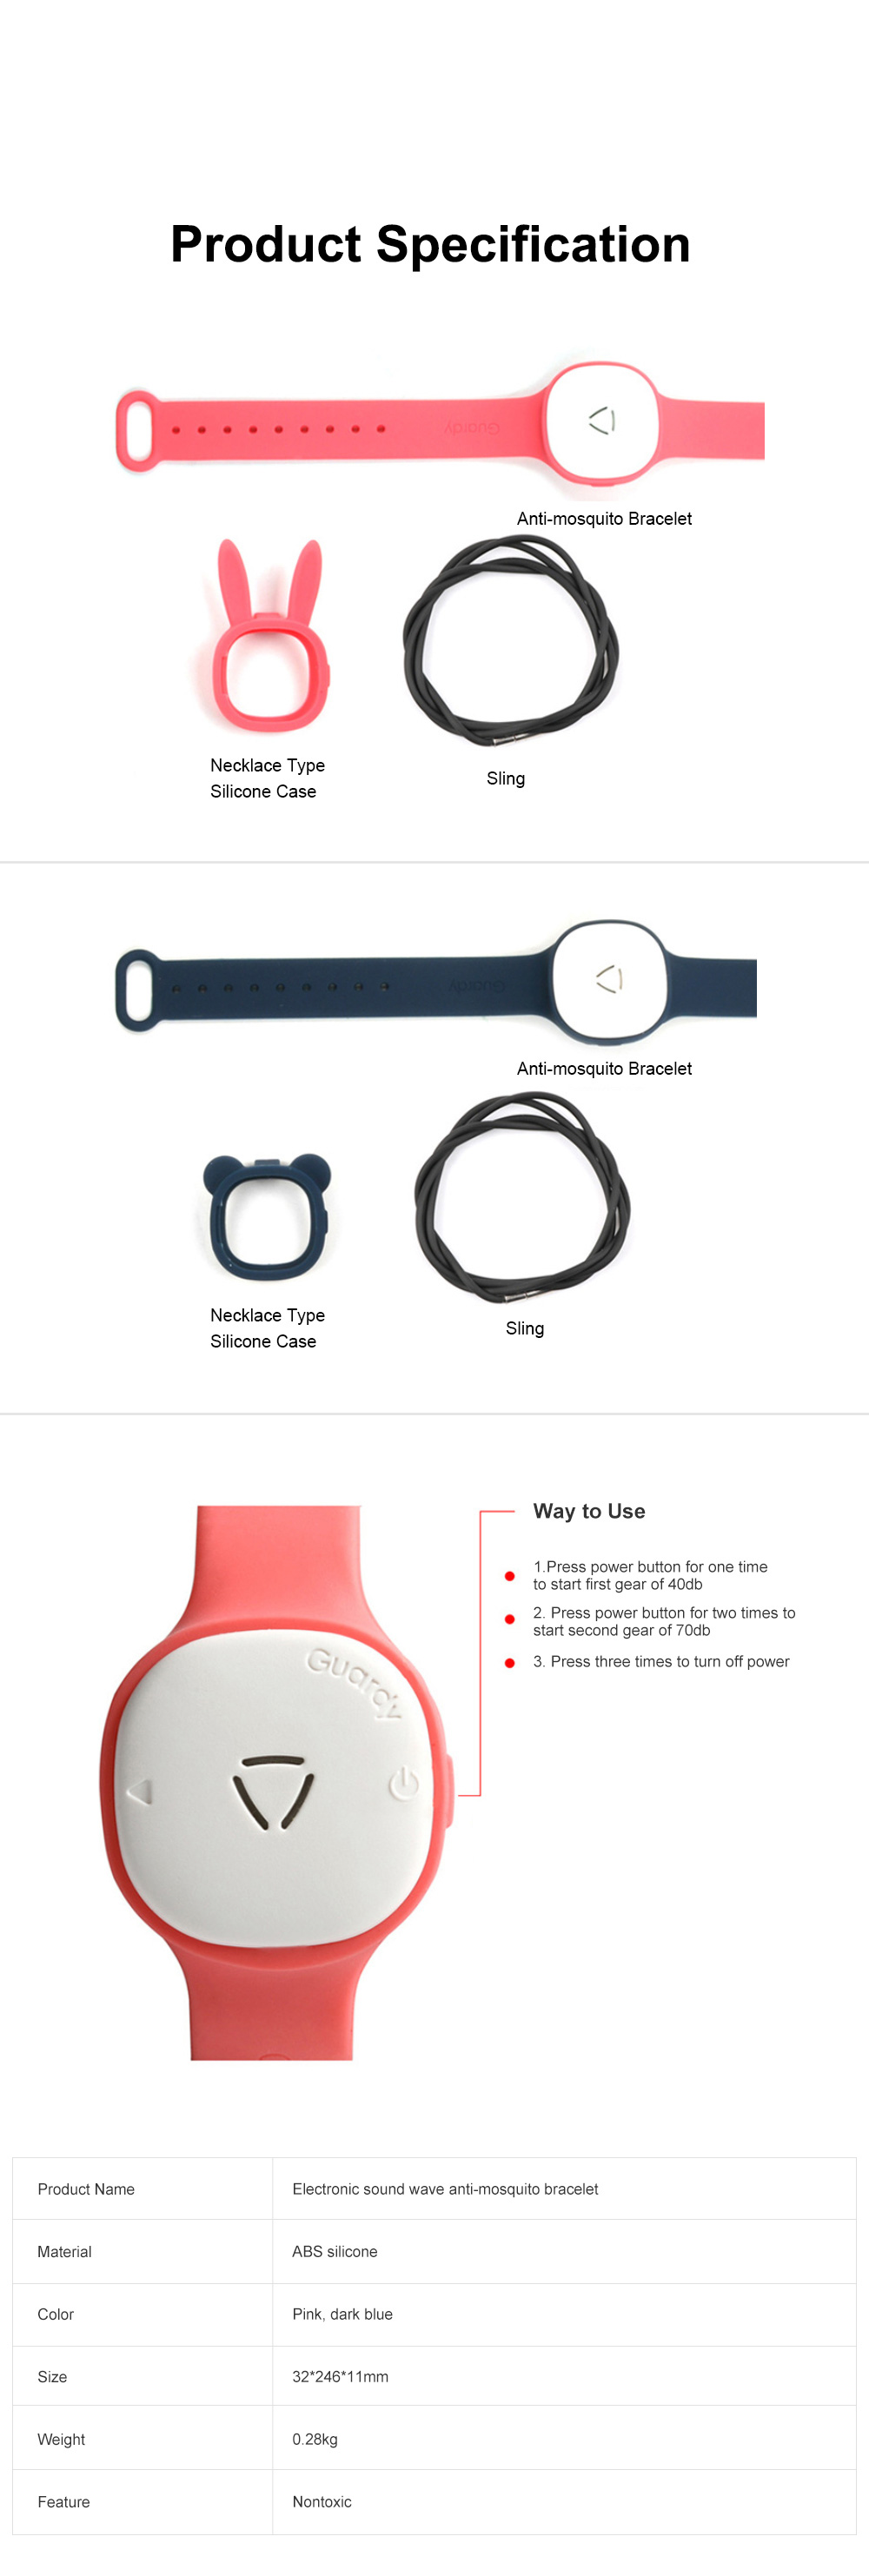 Children's Electronic Anti-mosquito Silicone Wristband for Outdoors Camping Fishing Nontoxic Sound Wave Mosquito Repellent Bracelet for Kids 6